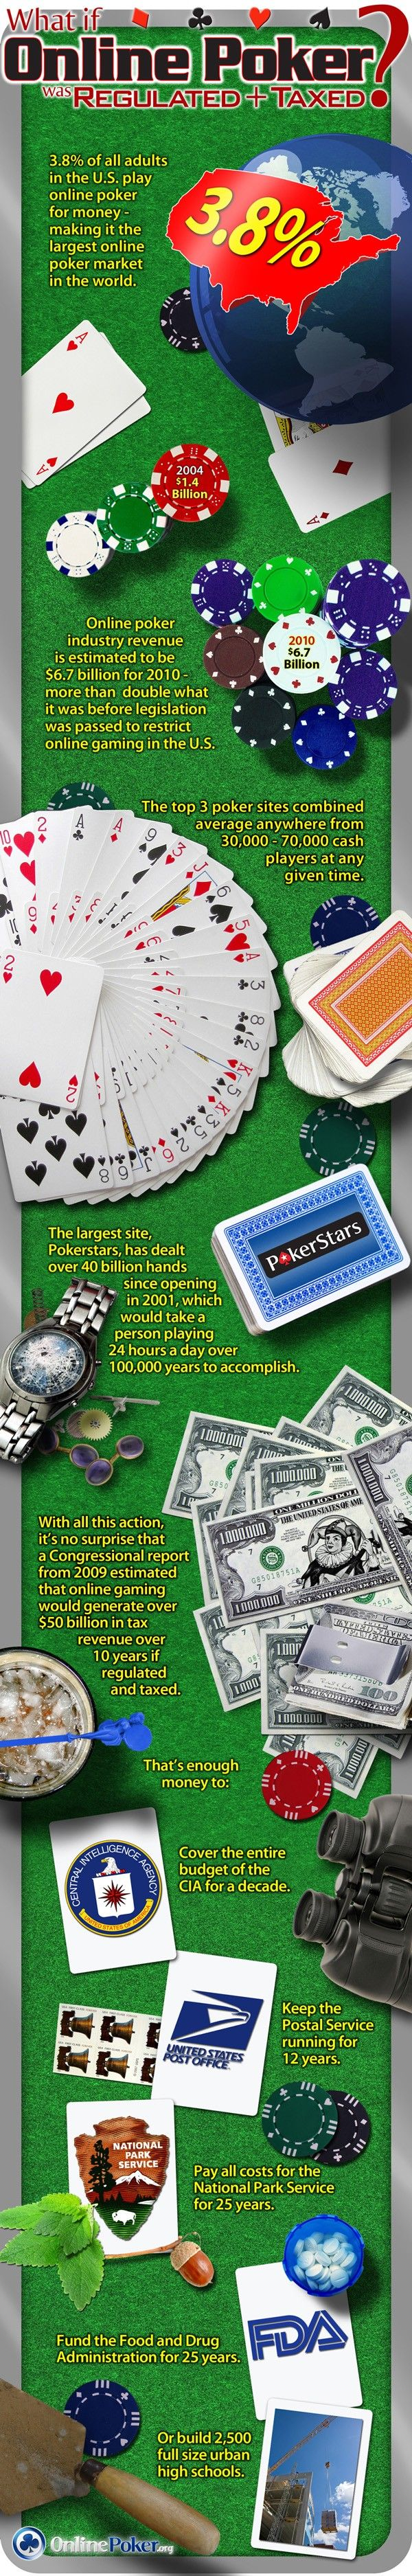 What If Online Poker Was Regulated And Taxed